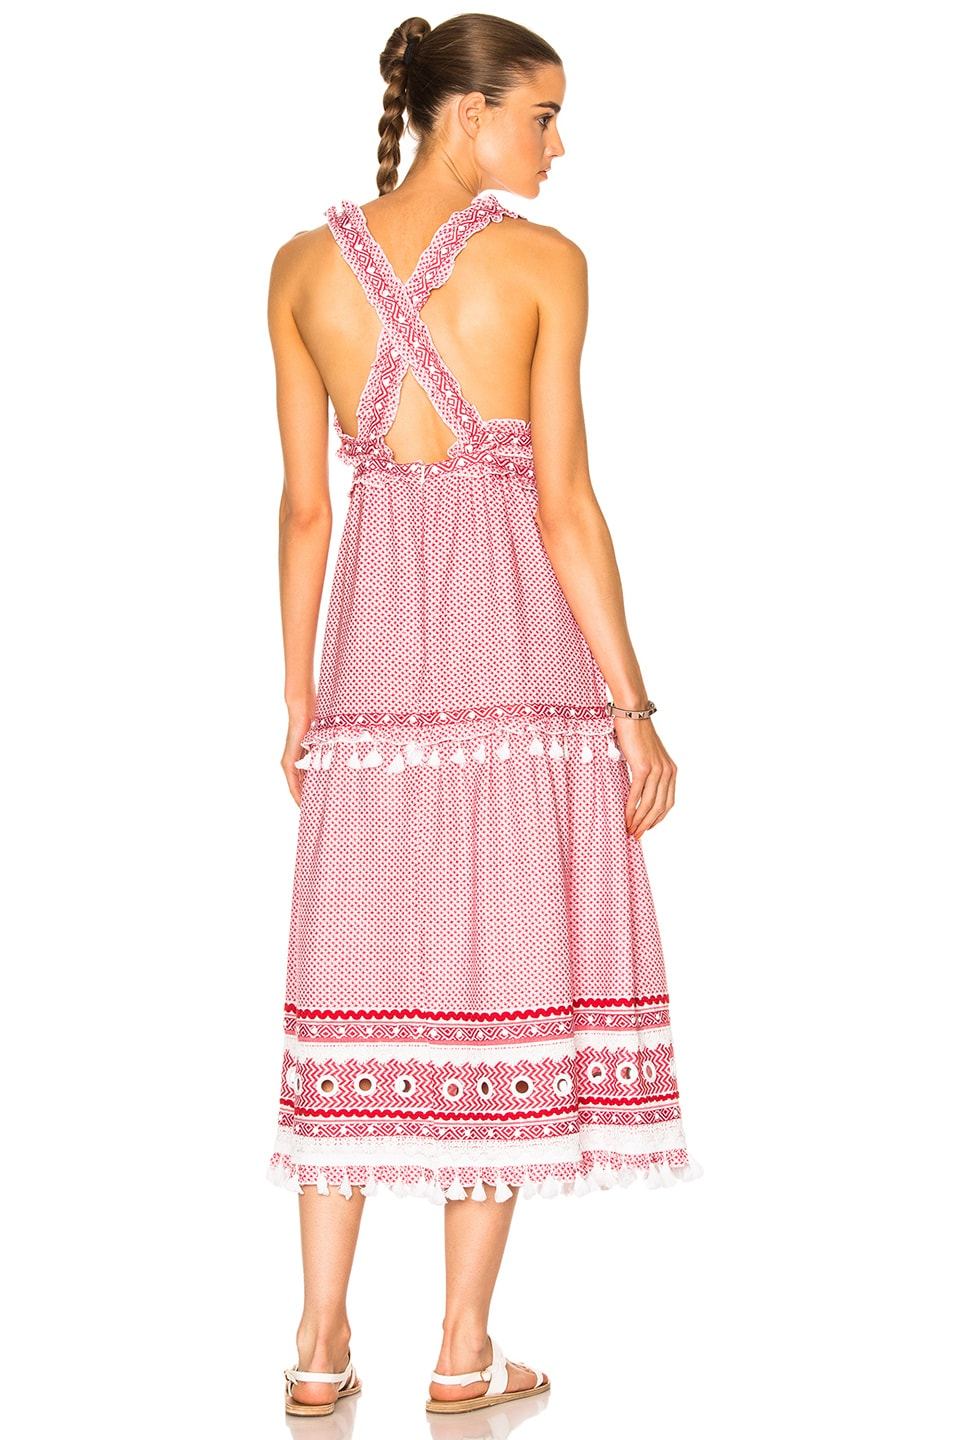 Embellished lace dress Dodo Bar Or Safe Payment Real Sale Online Cheap Sneakernews Quality Outlet Store Cheap Sale How Much vy7rp4